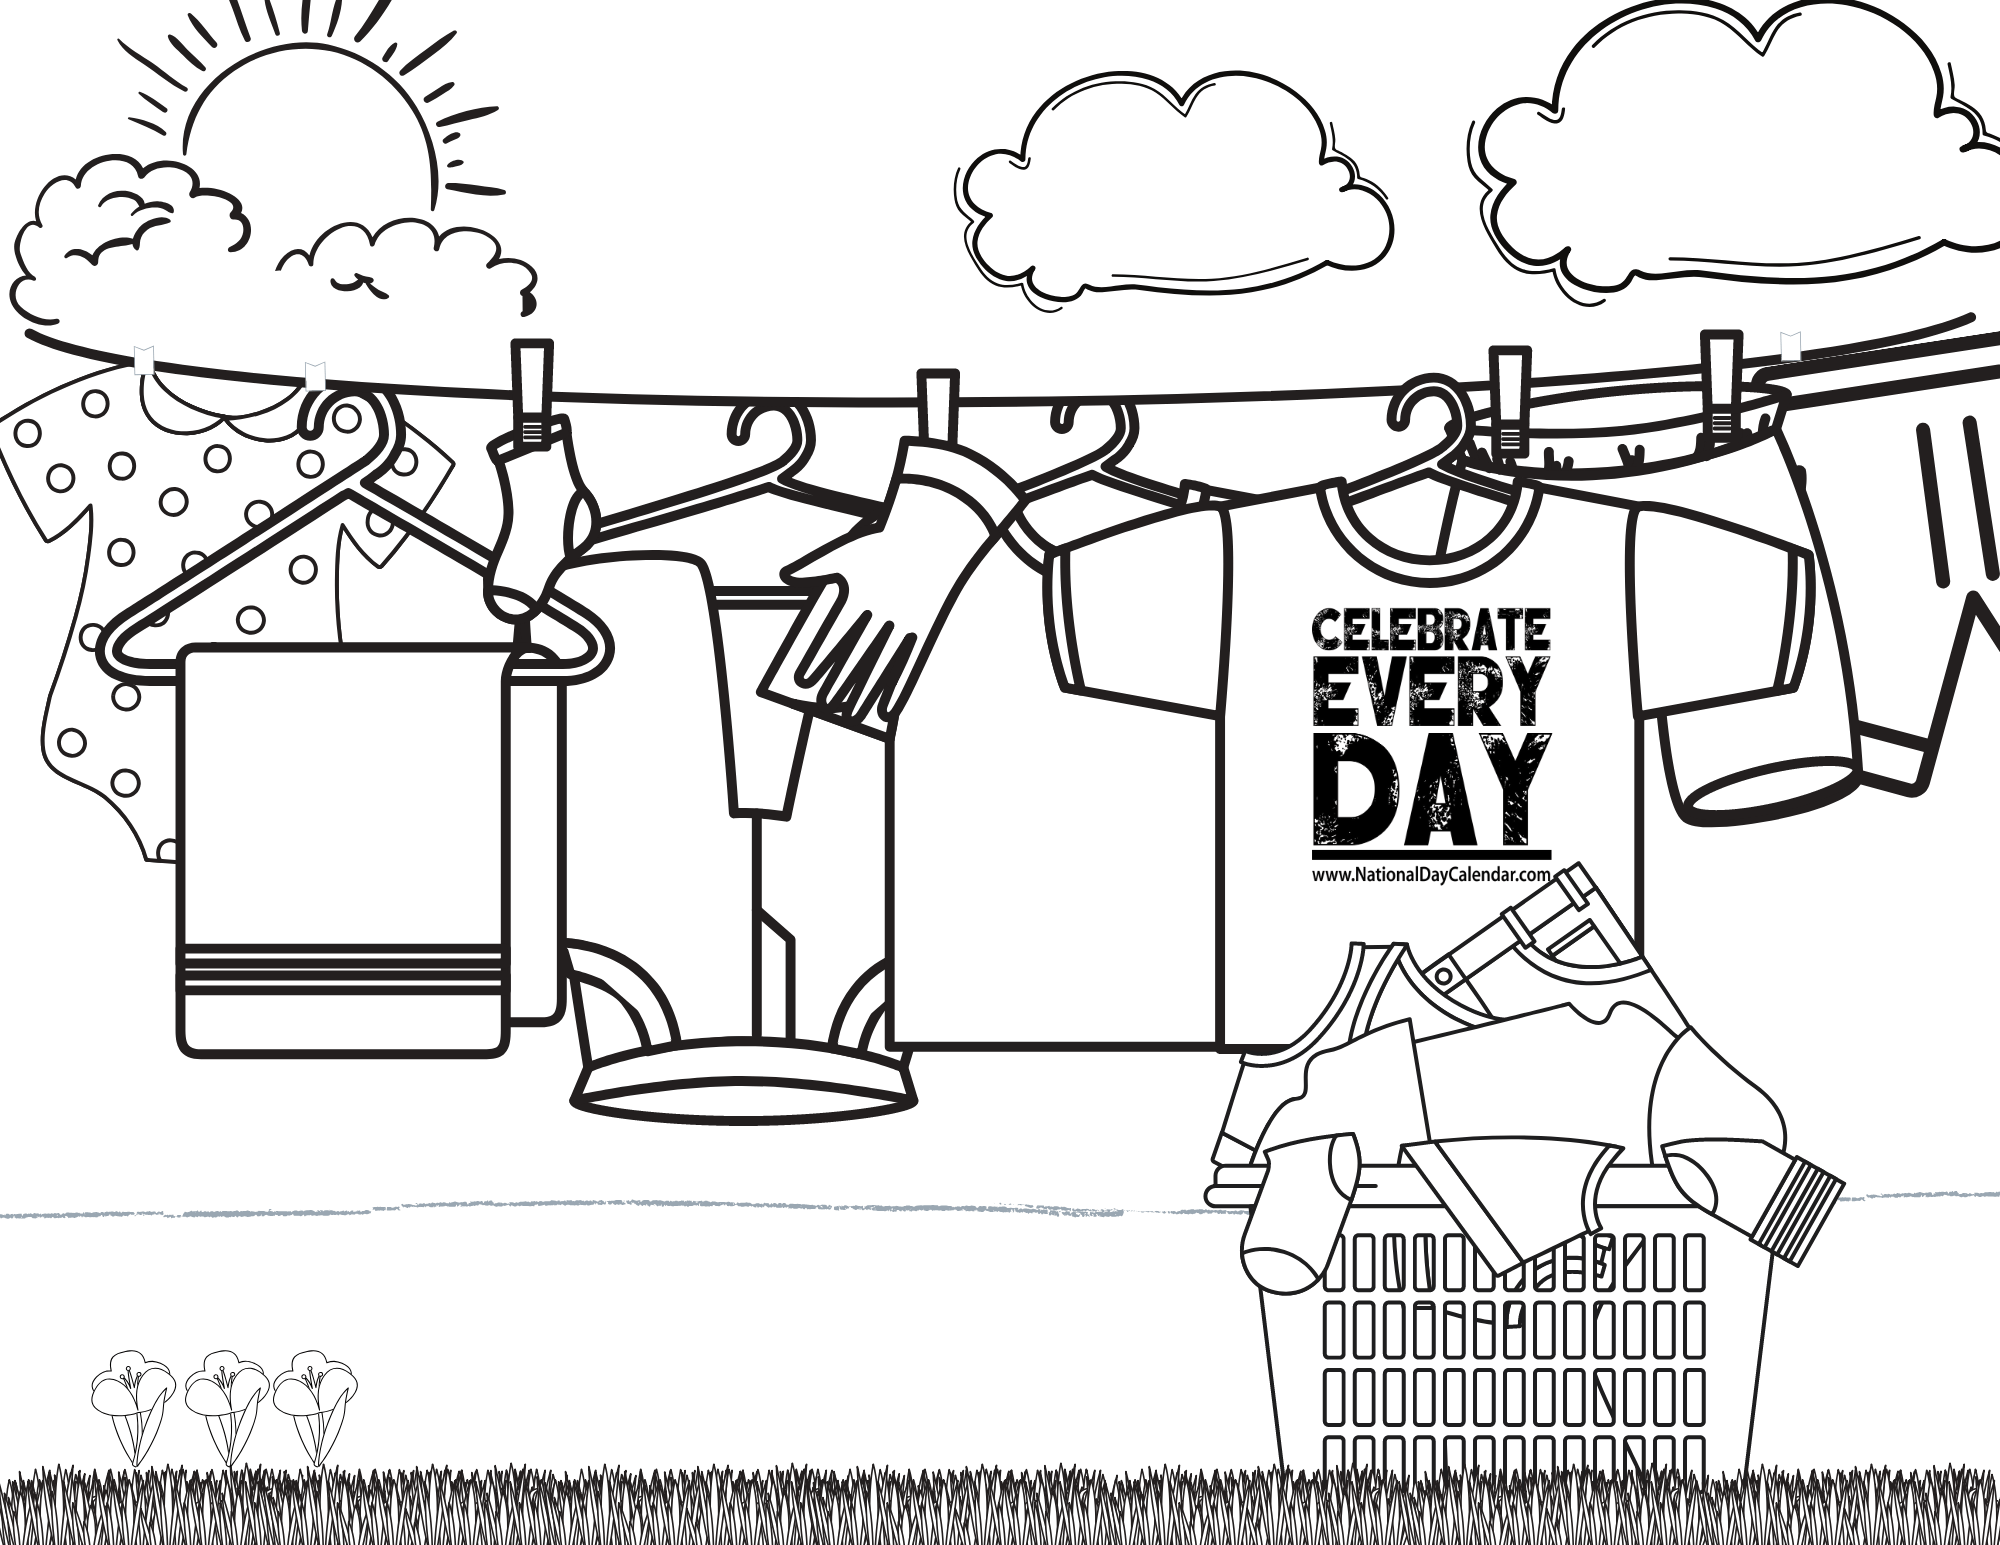 CLASSROOM - COLORING PAGES - National Day Calendar